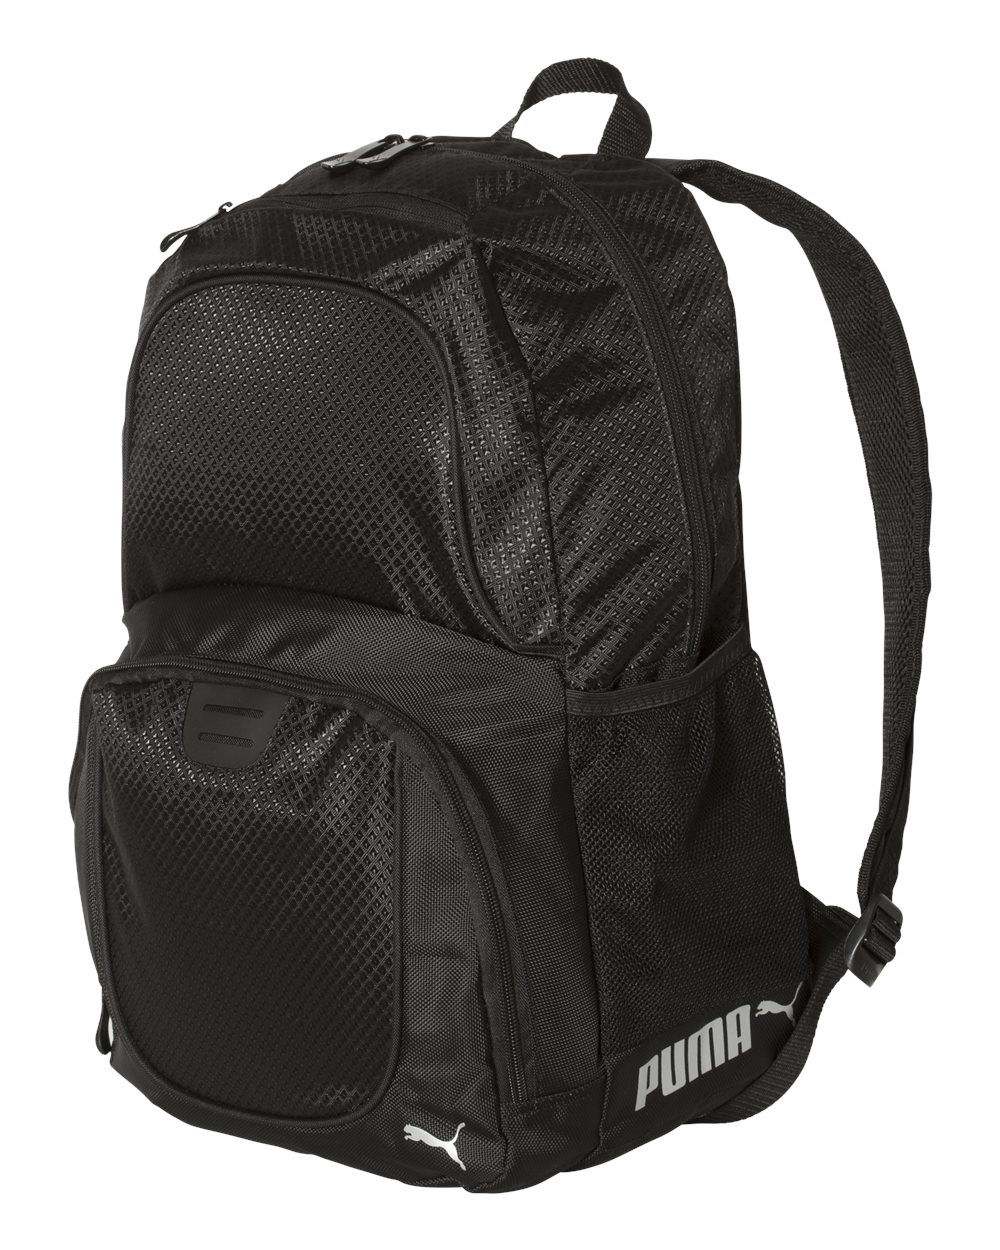 Puma PSC1028 - 25L Backpack